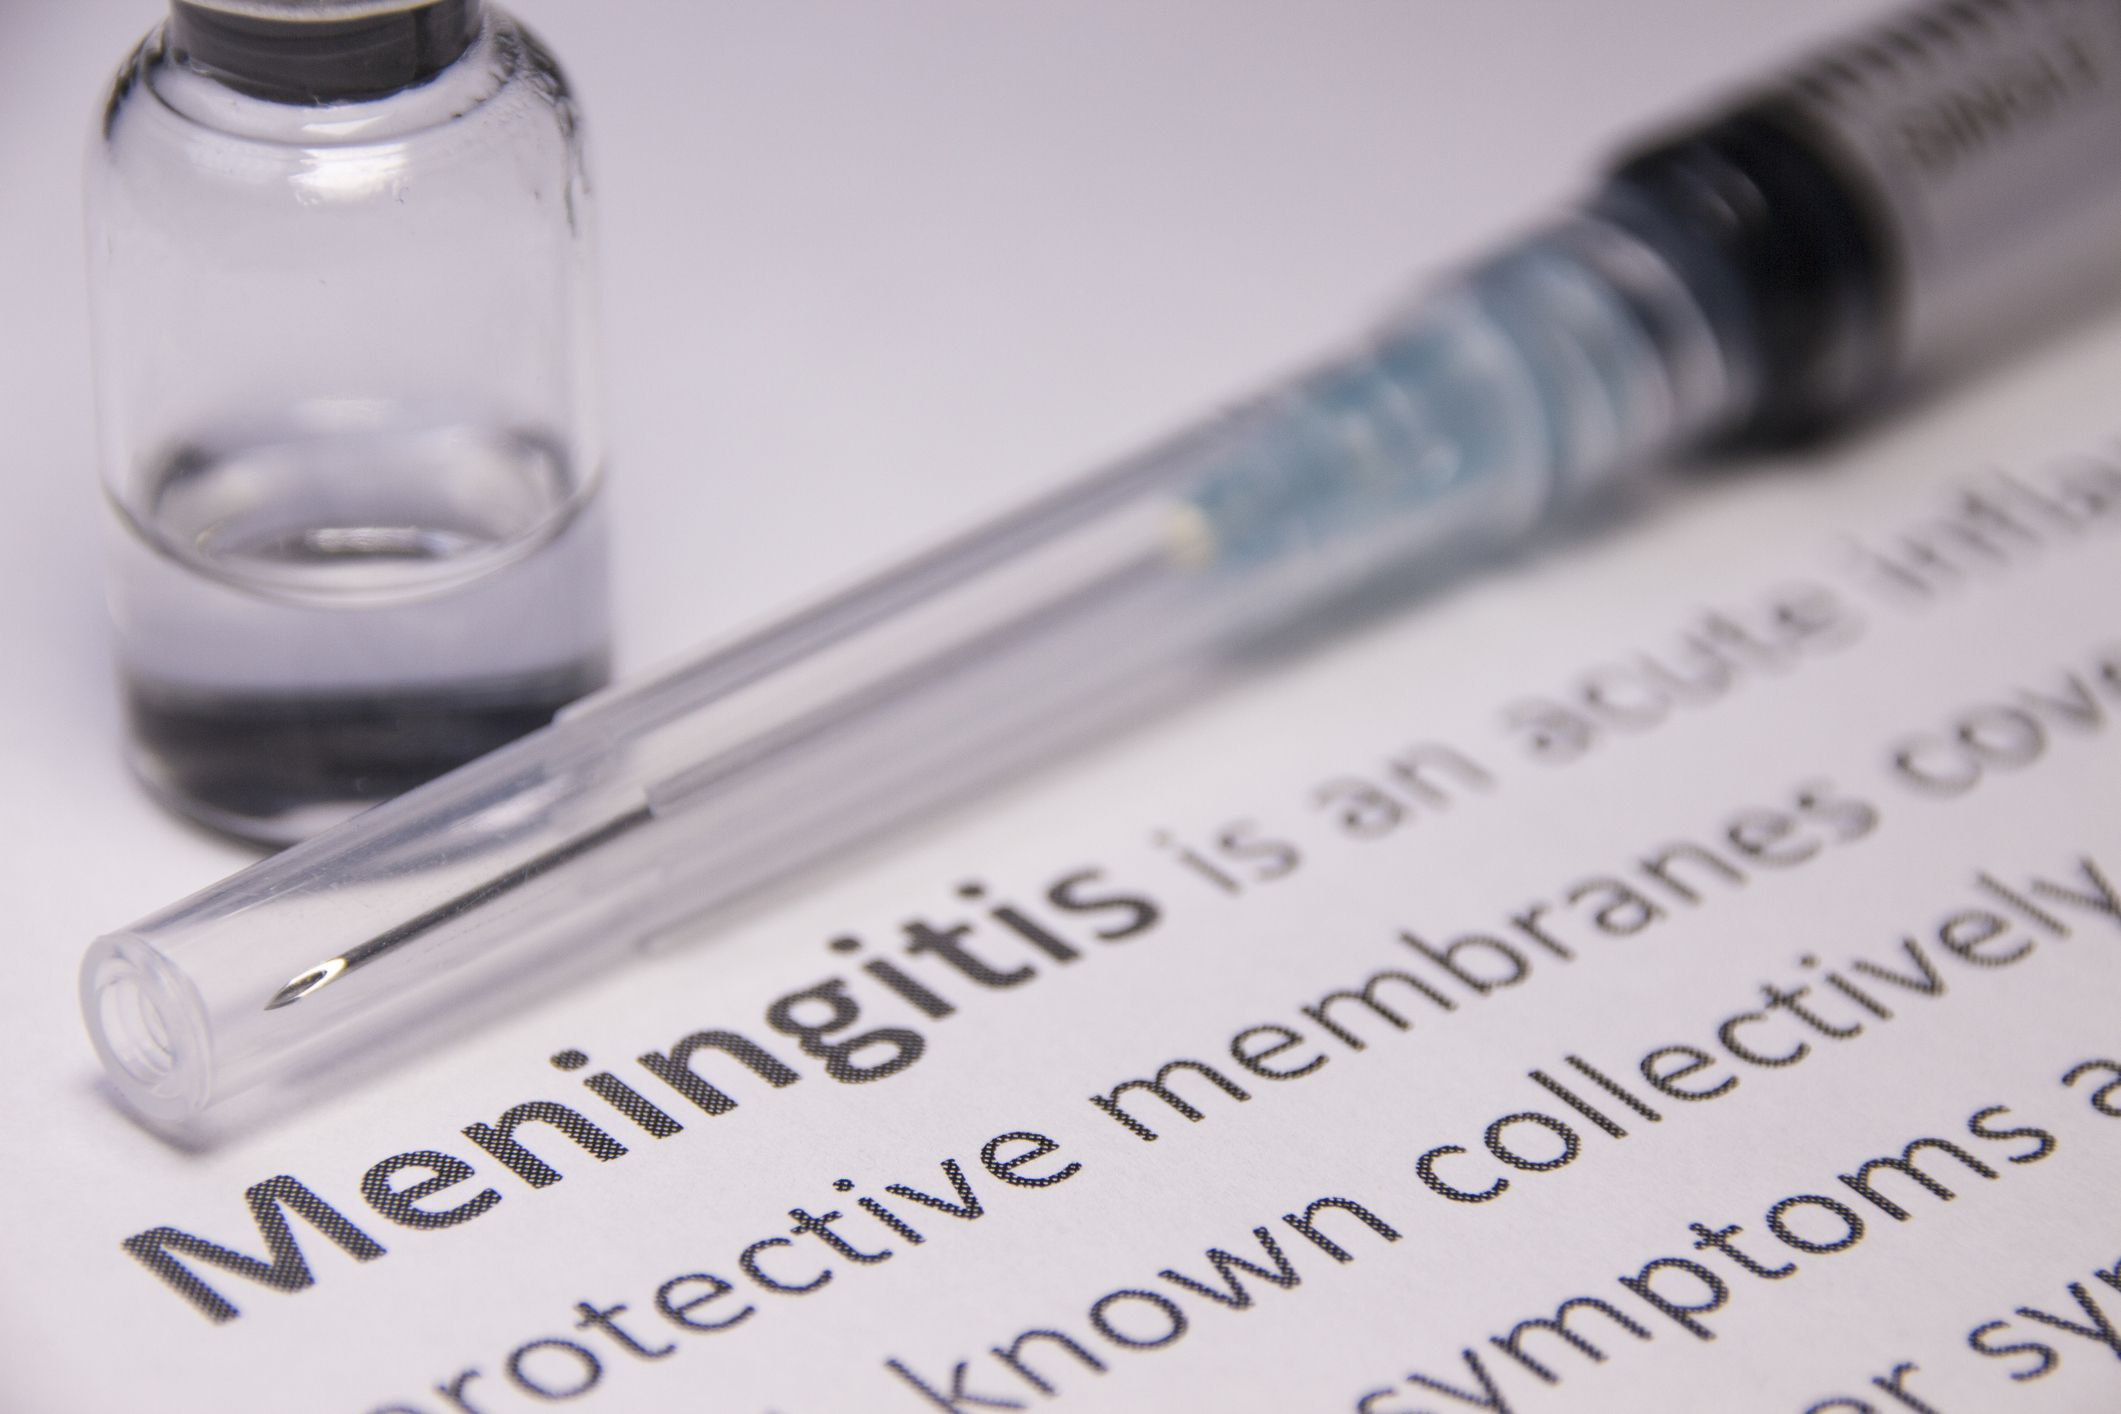 Meningitis: Symptoms, causes and treatment